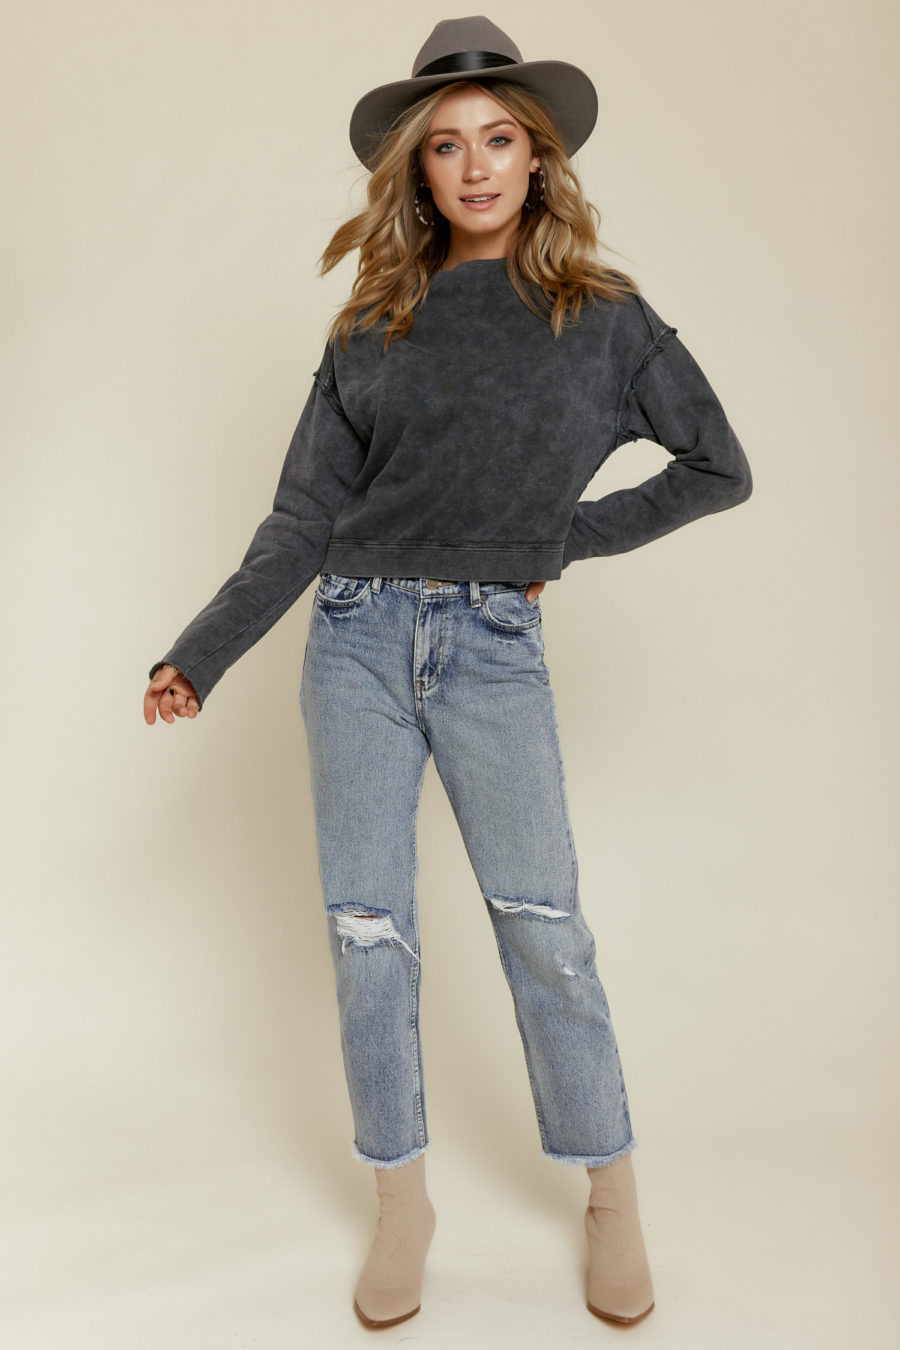 Free People: Oh Marley Pullover Sweater